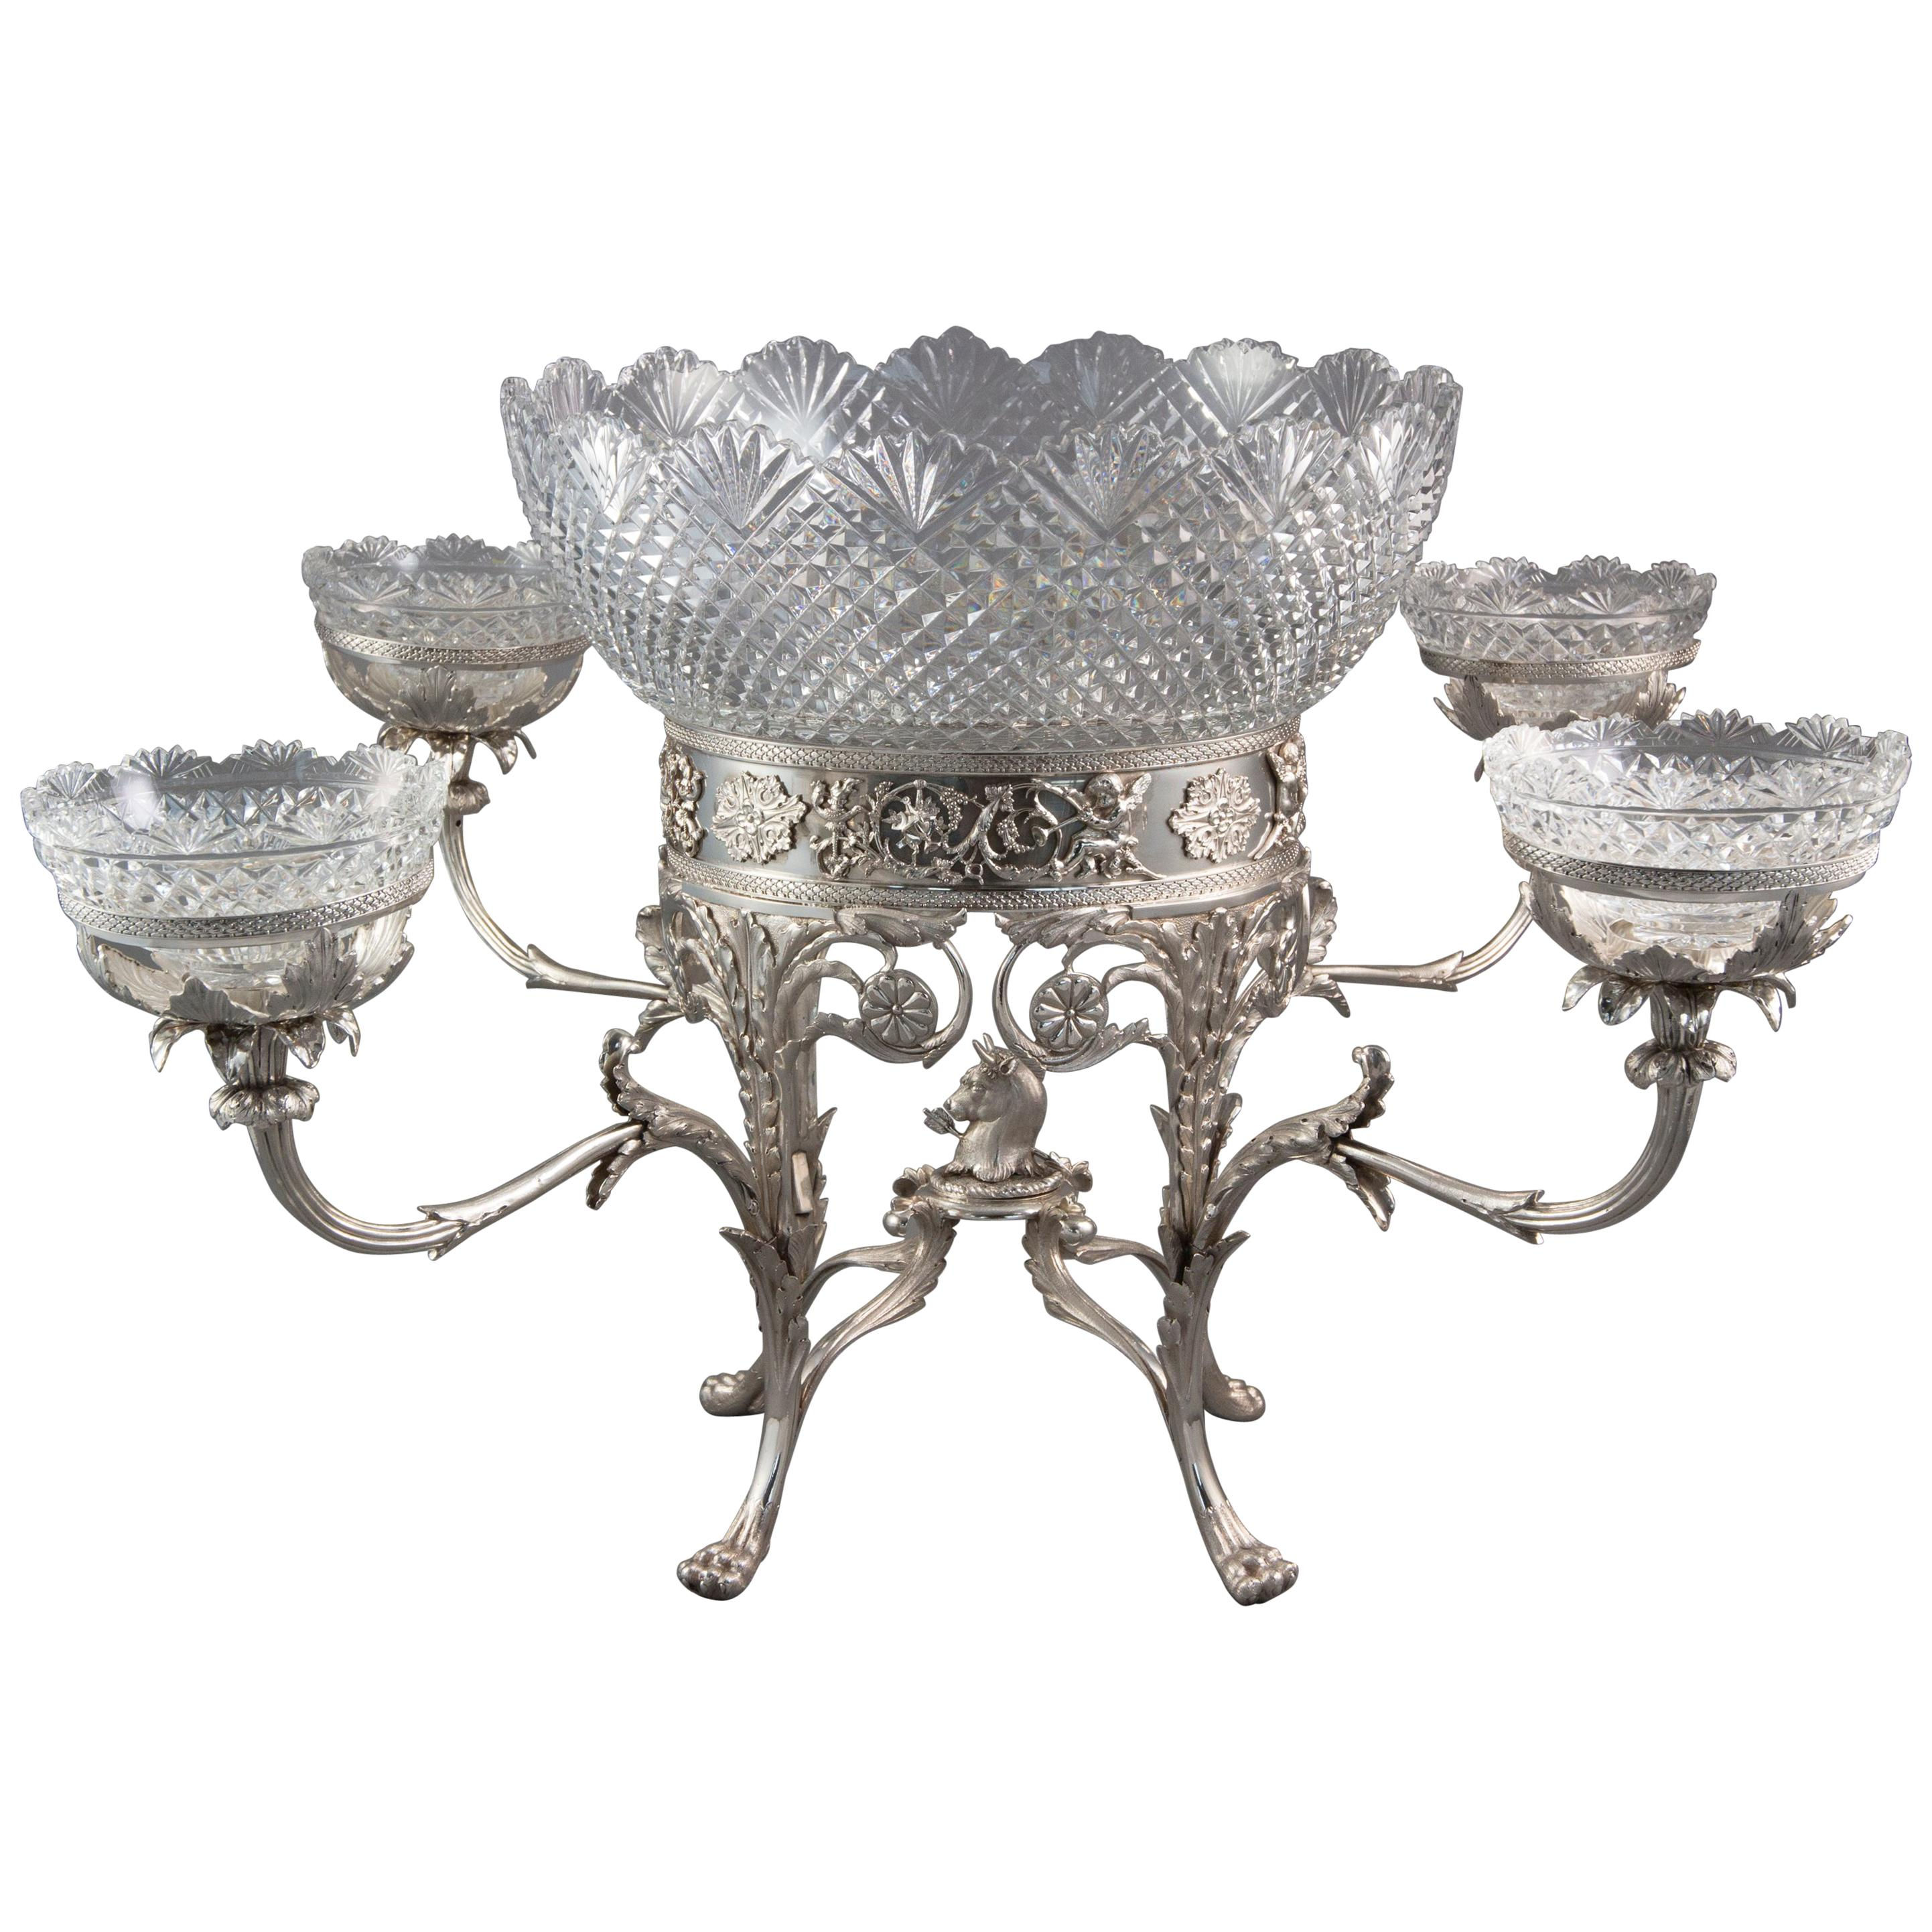 George III Silver Epergne, London 1808 by William Pitts